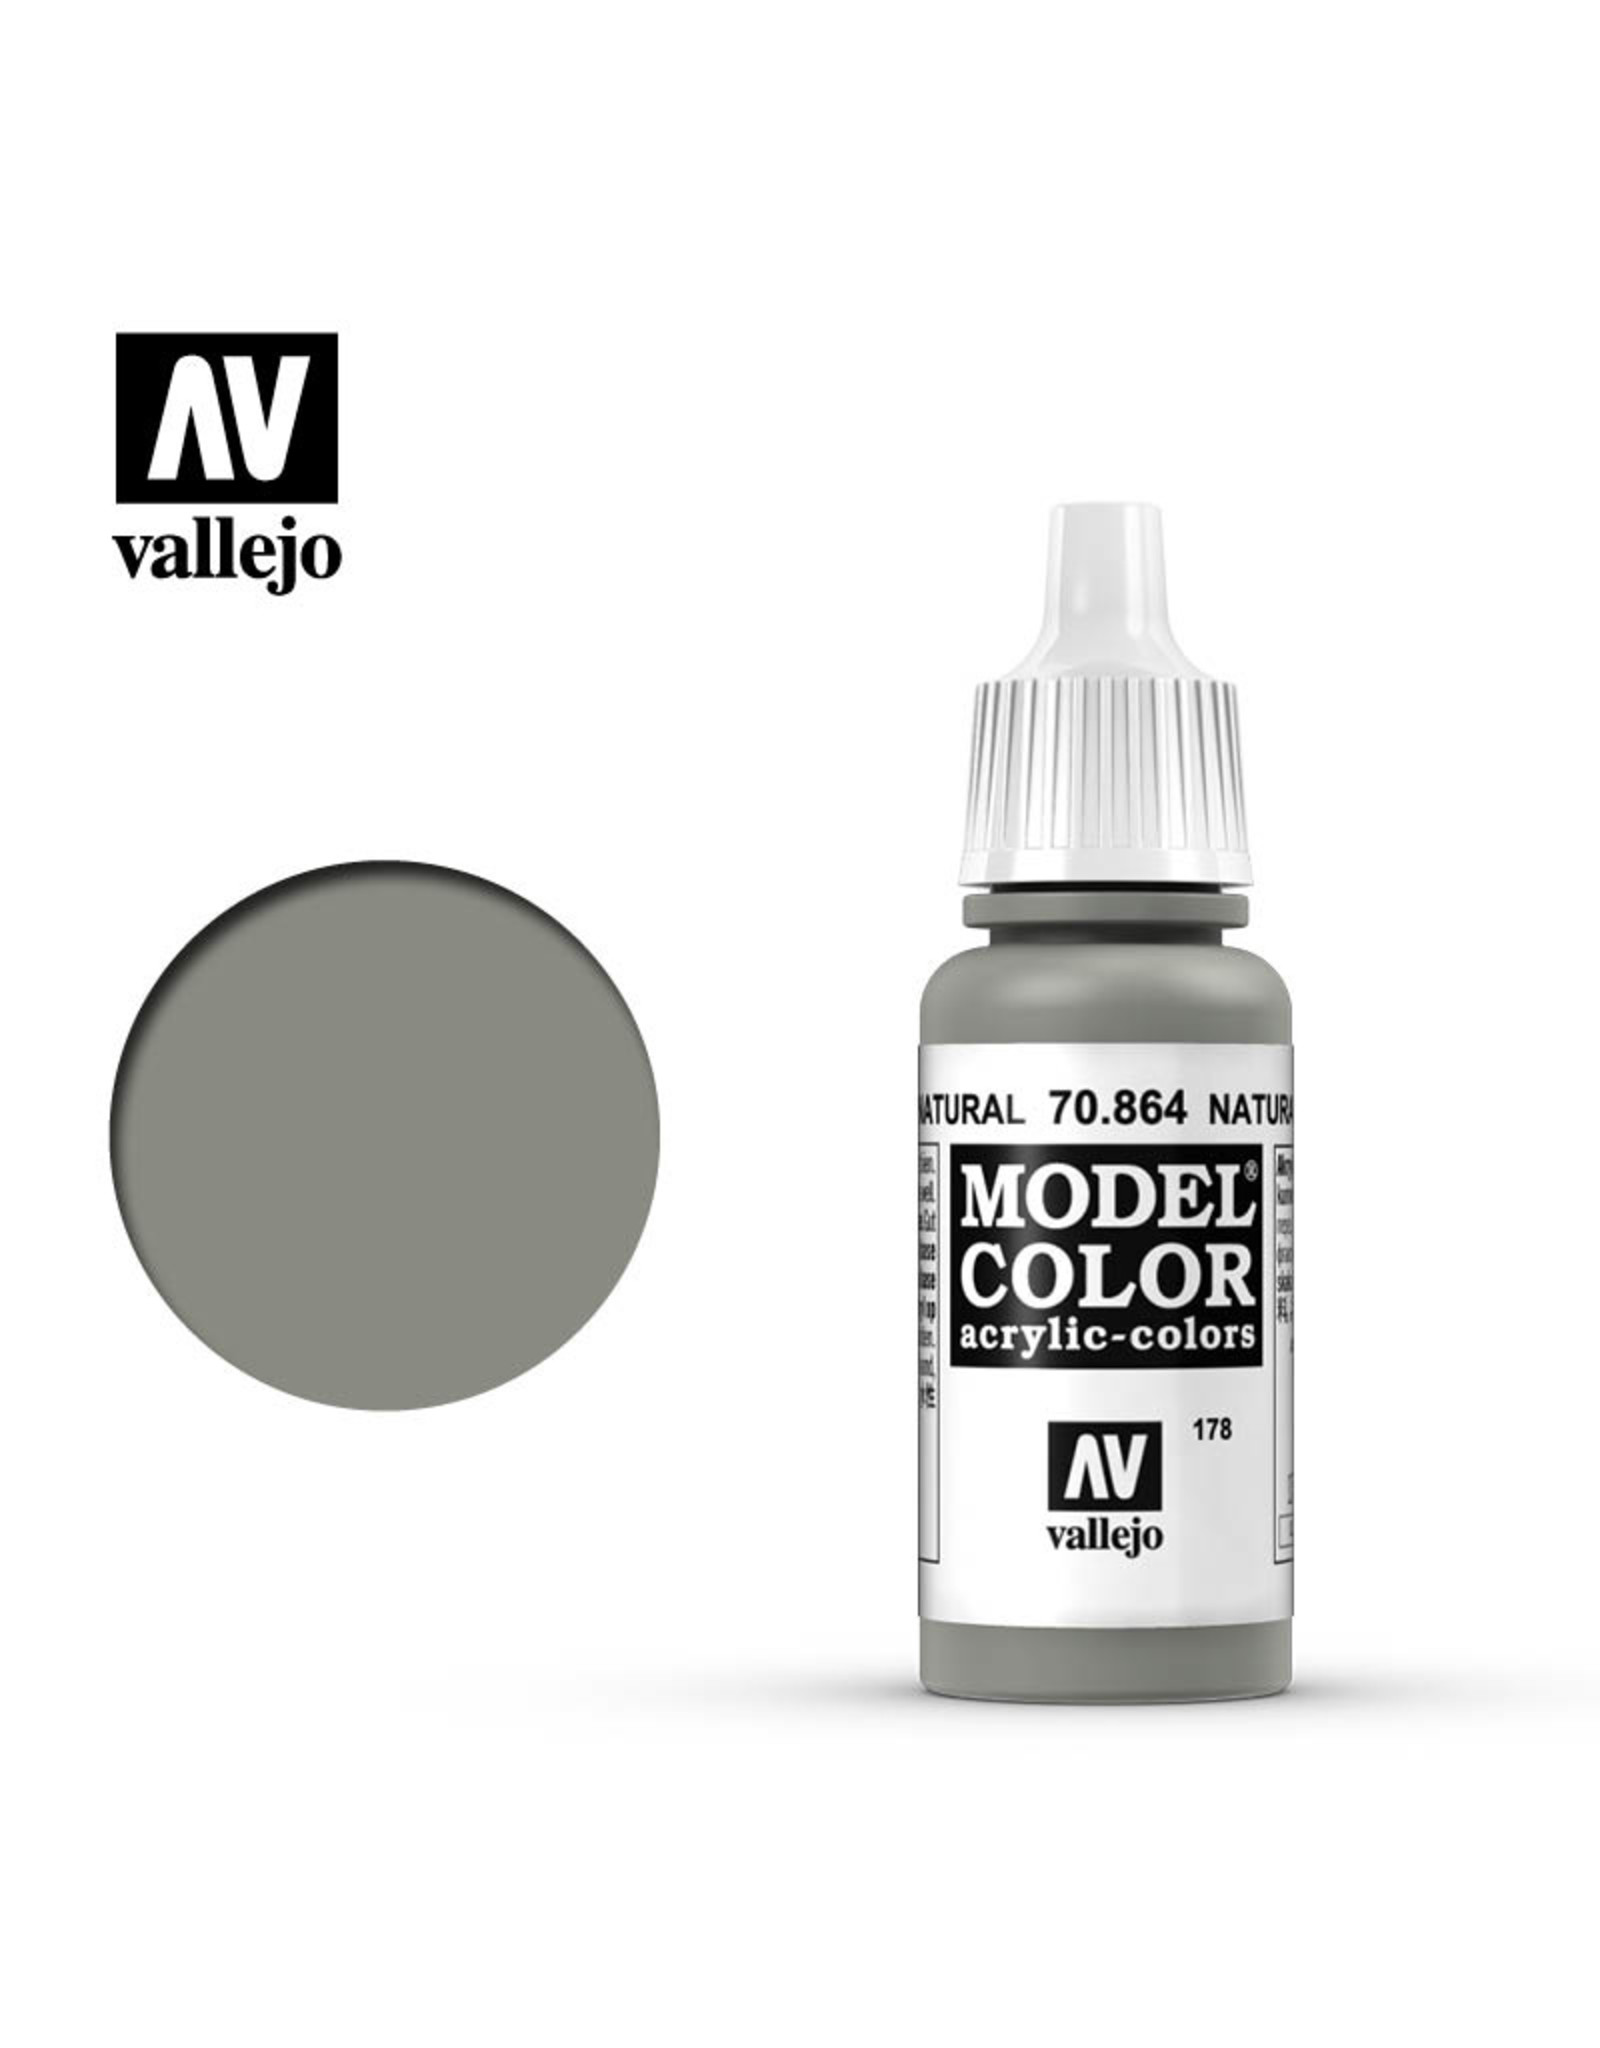 Vallejo Vallejo Model Colors: Black/Grey Shades